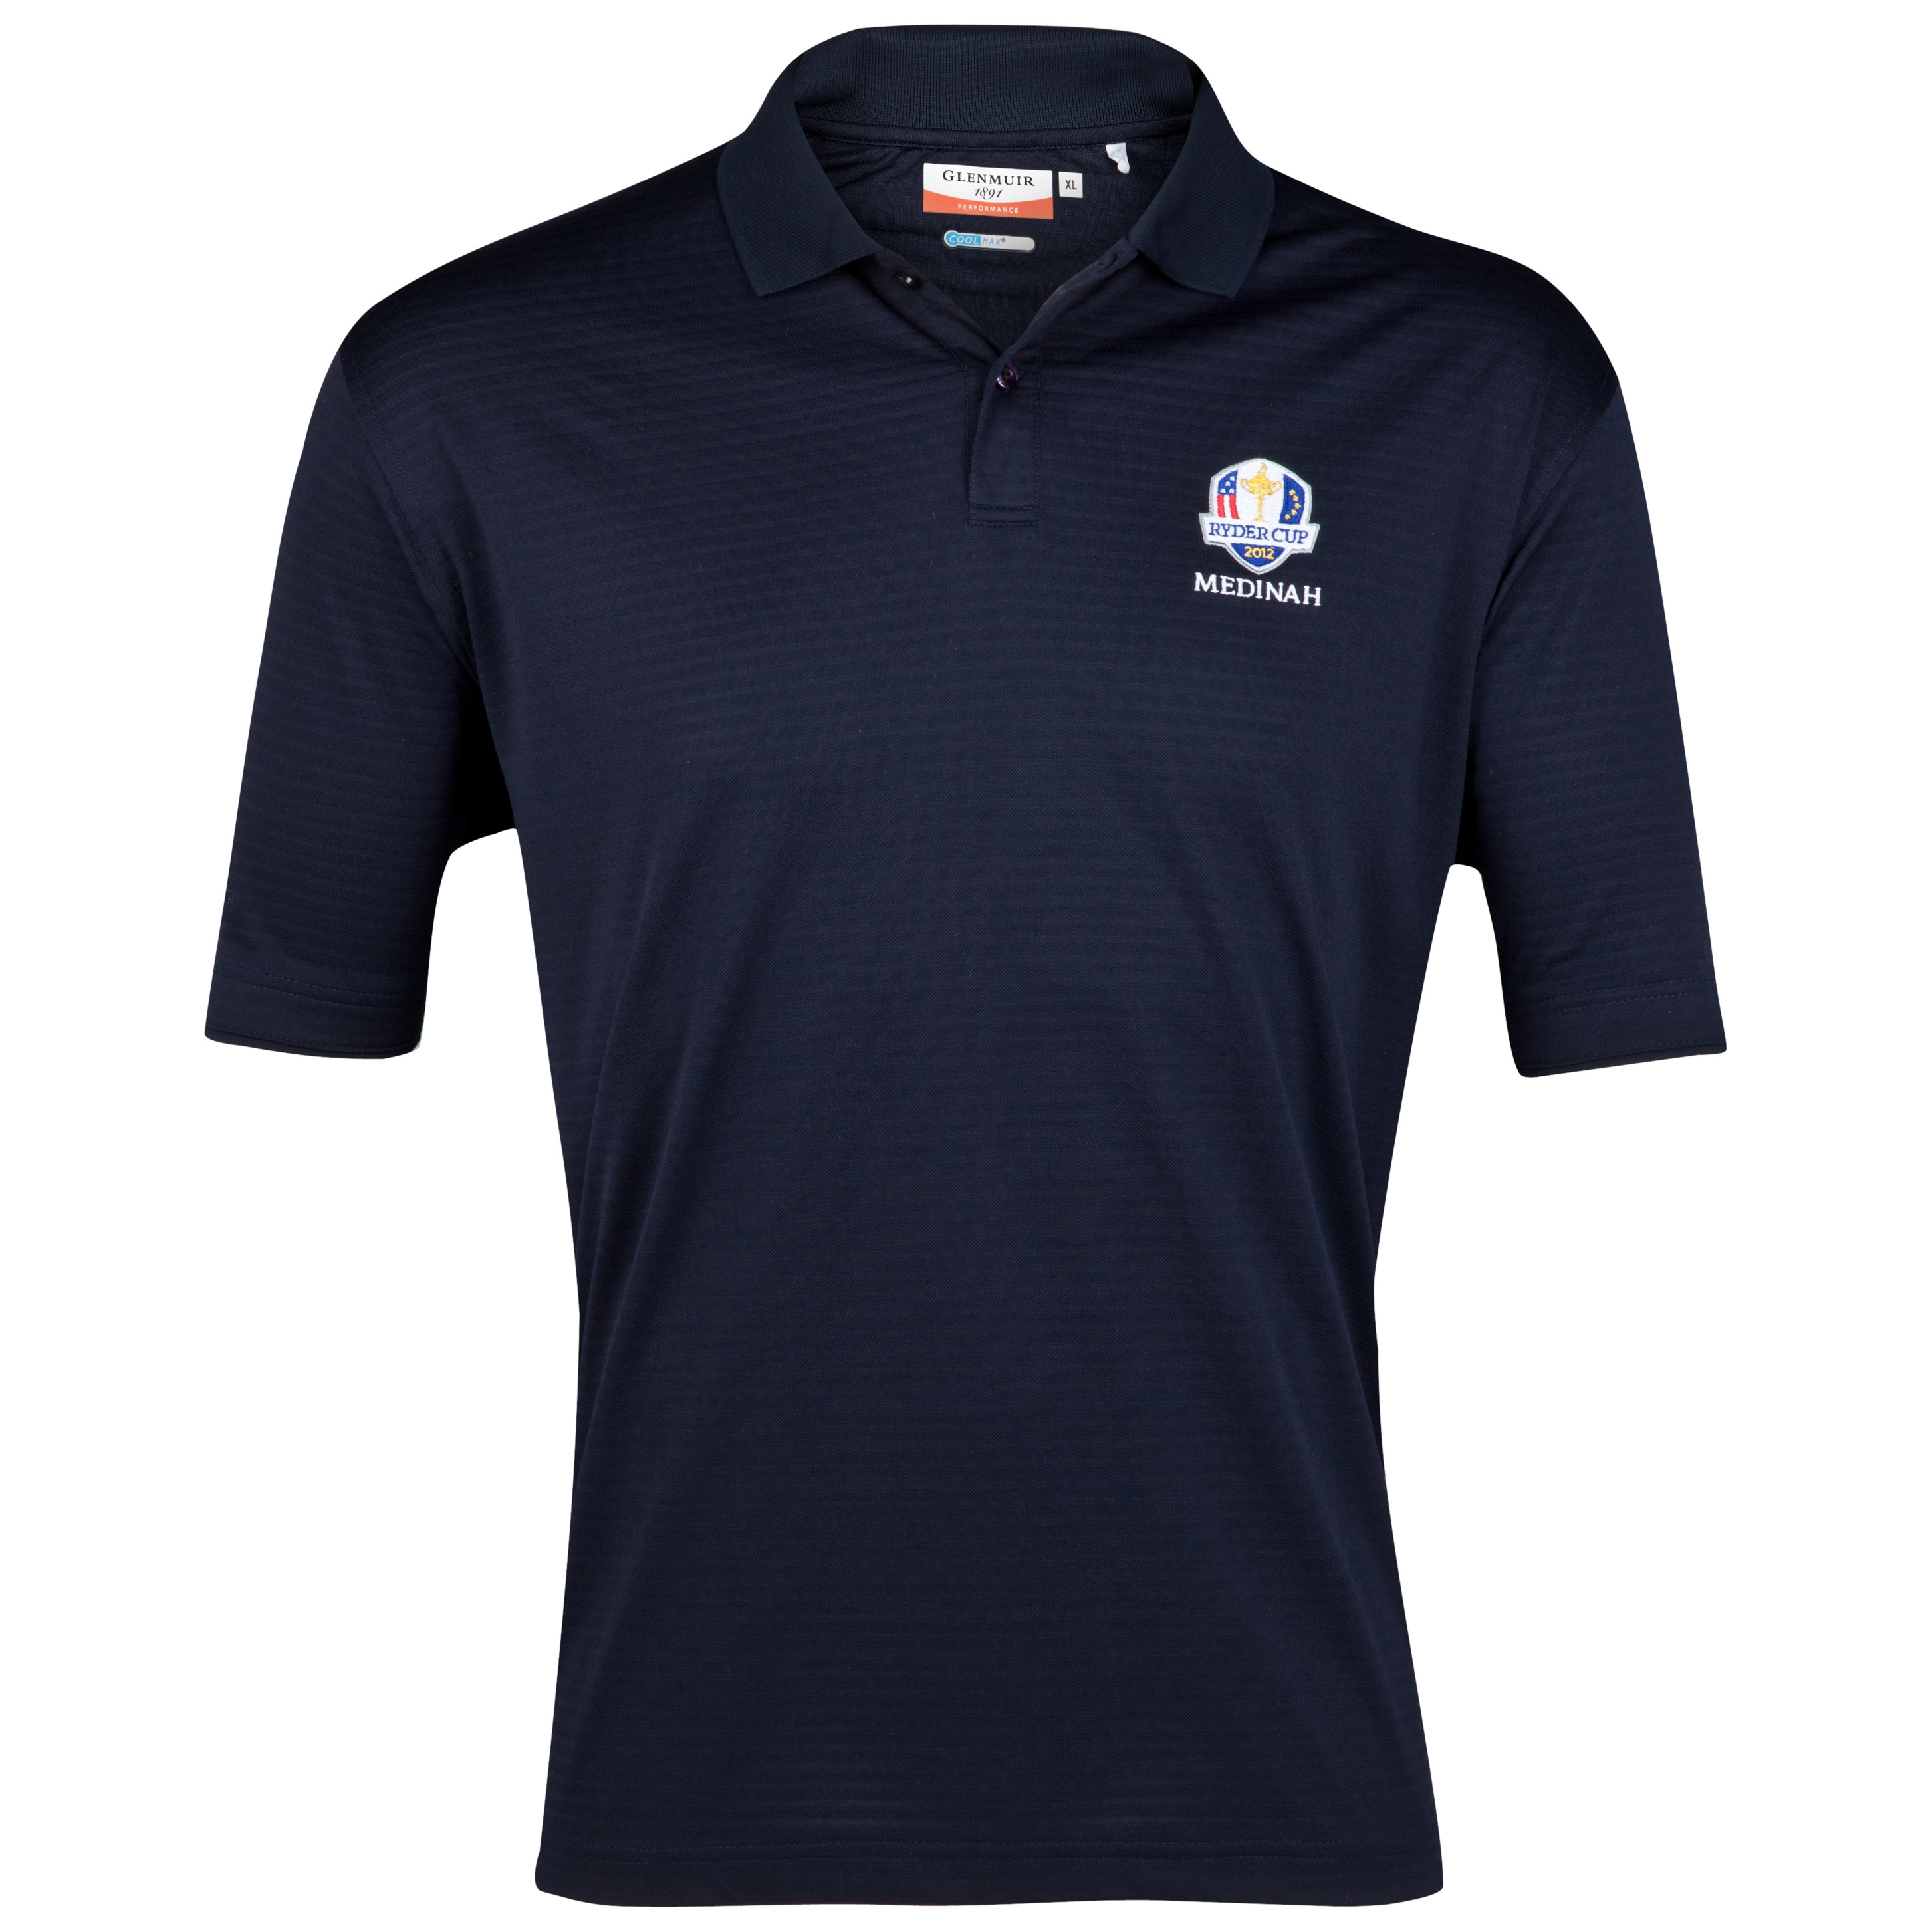 The 2014 Ryder Cup Glenmuir Performance Club Coolmax Polo - Navy